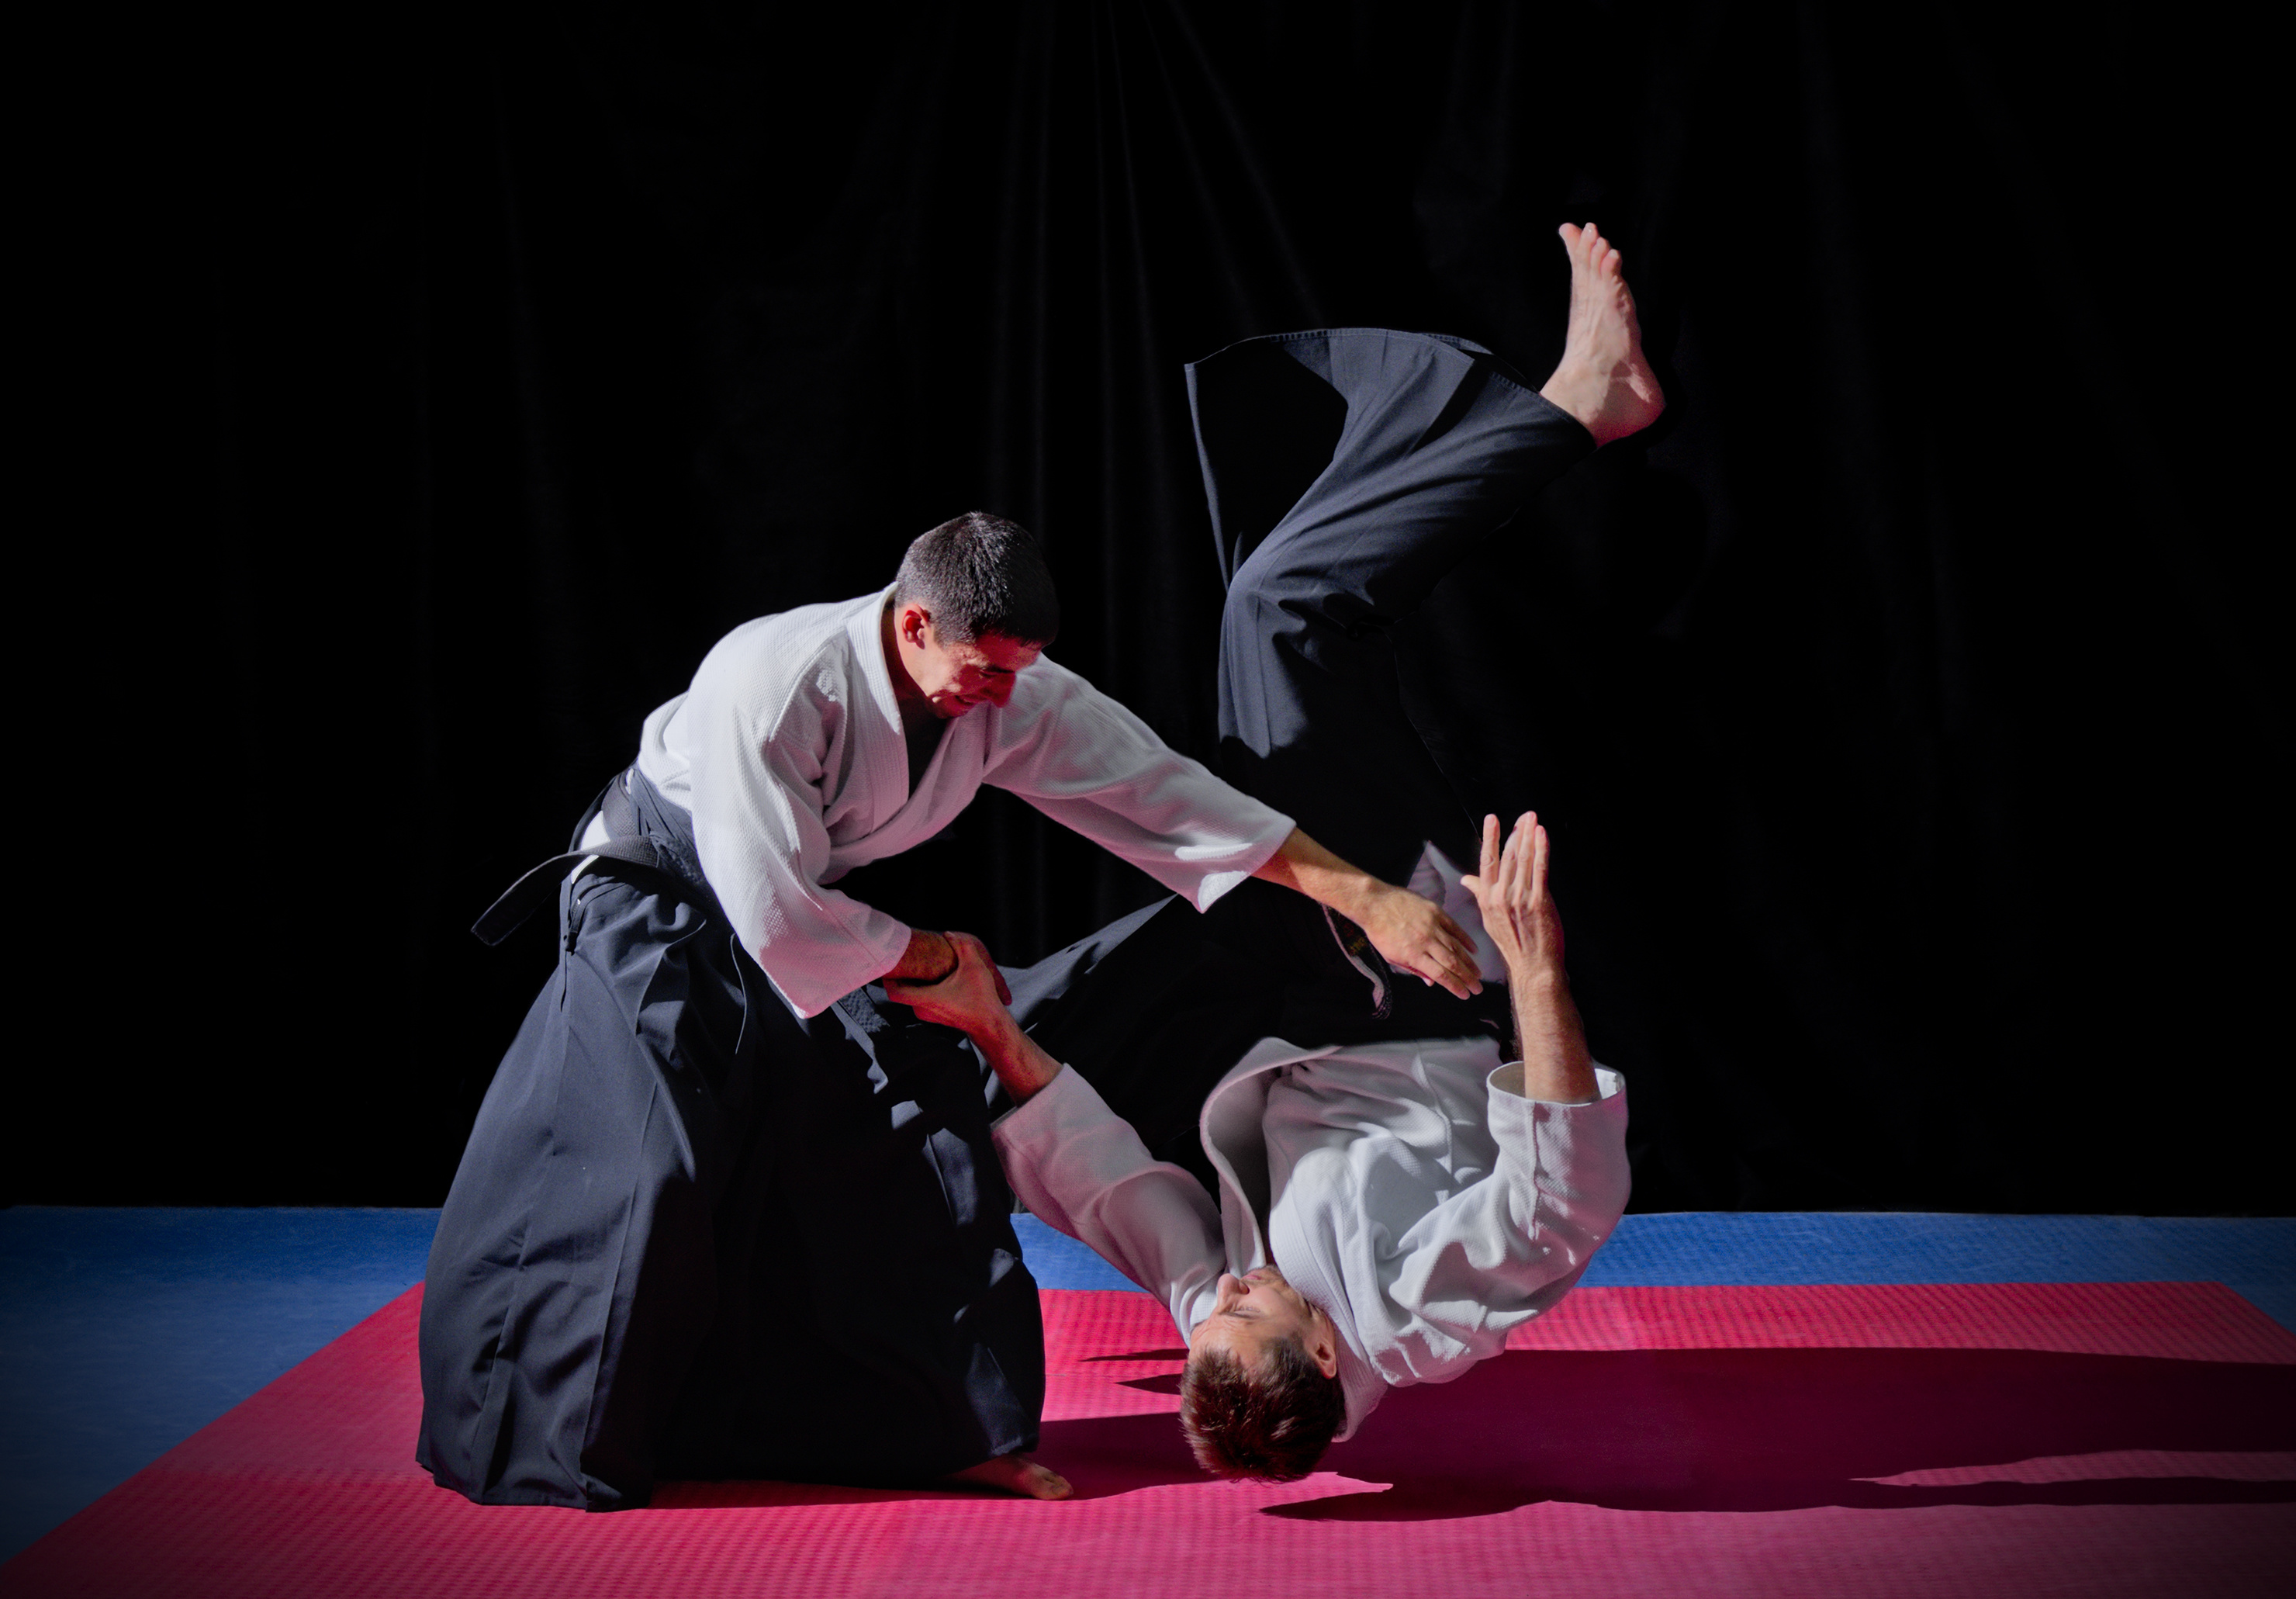 two aikido practitioners